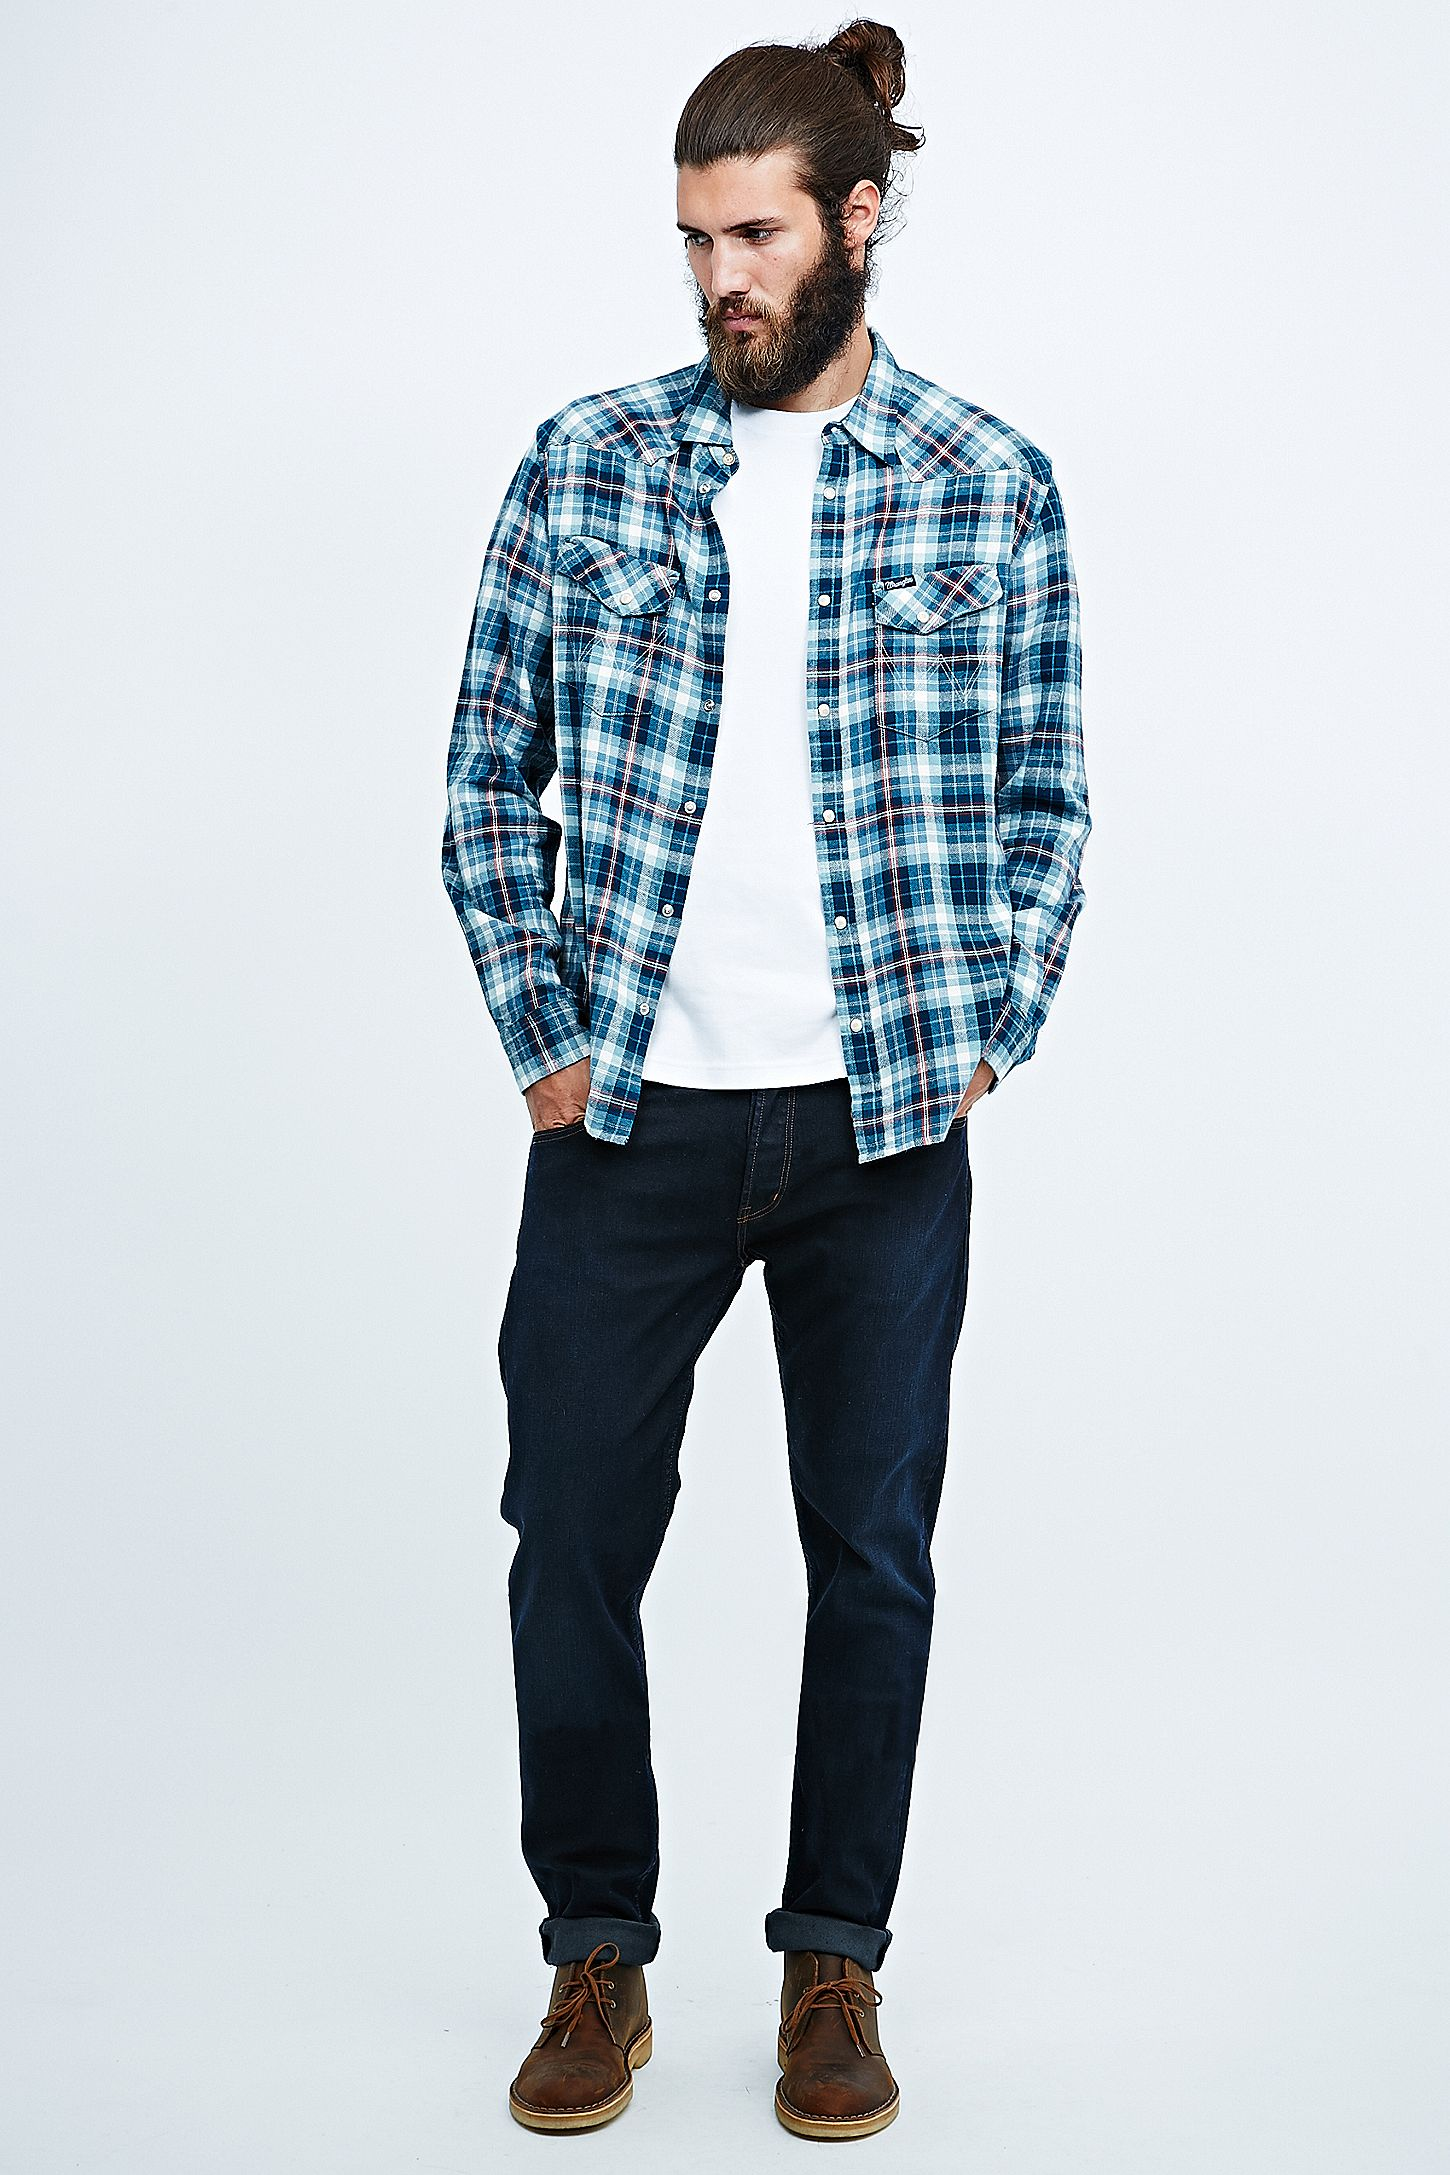 8a300f83 Wrangler Colton Hard Edge Tapered Jeans in Dark Denim. Click on image to  zoom. Hover to zoom. Double Tap to Zoom